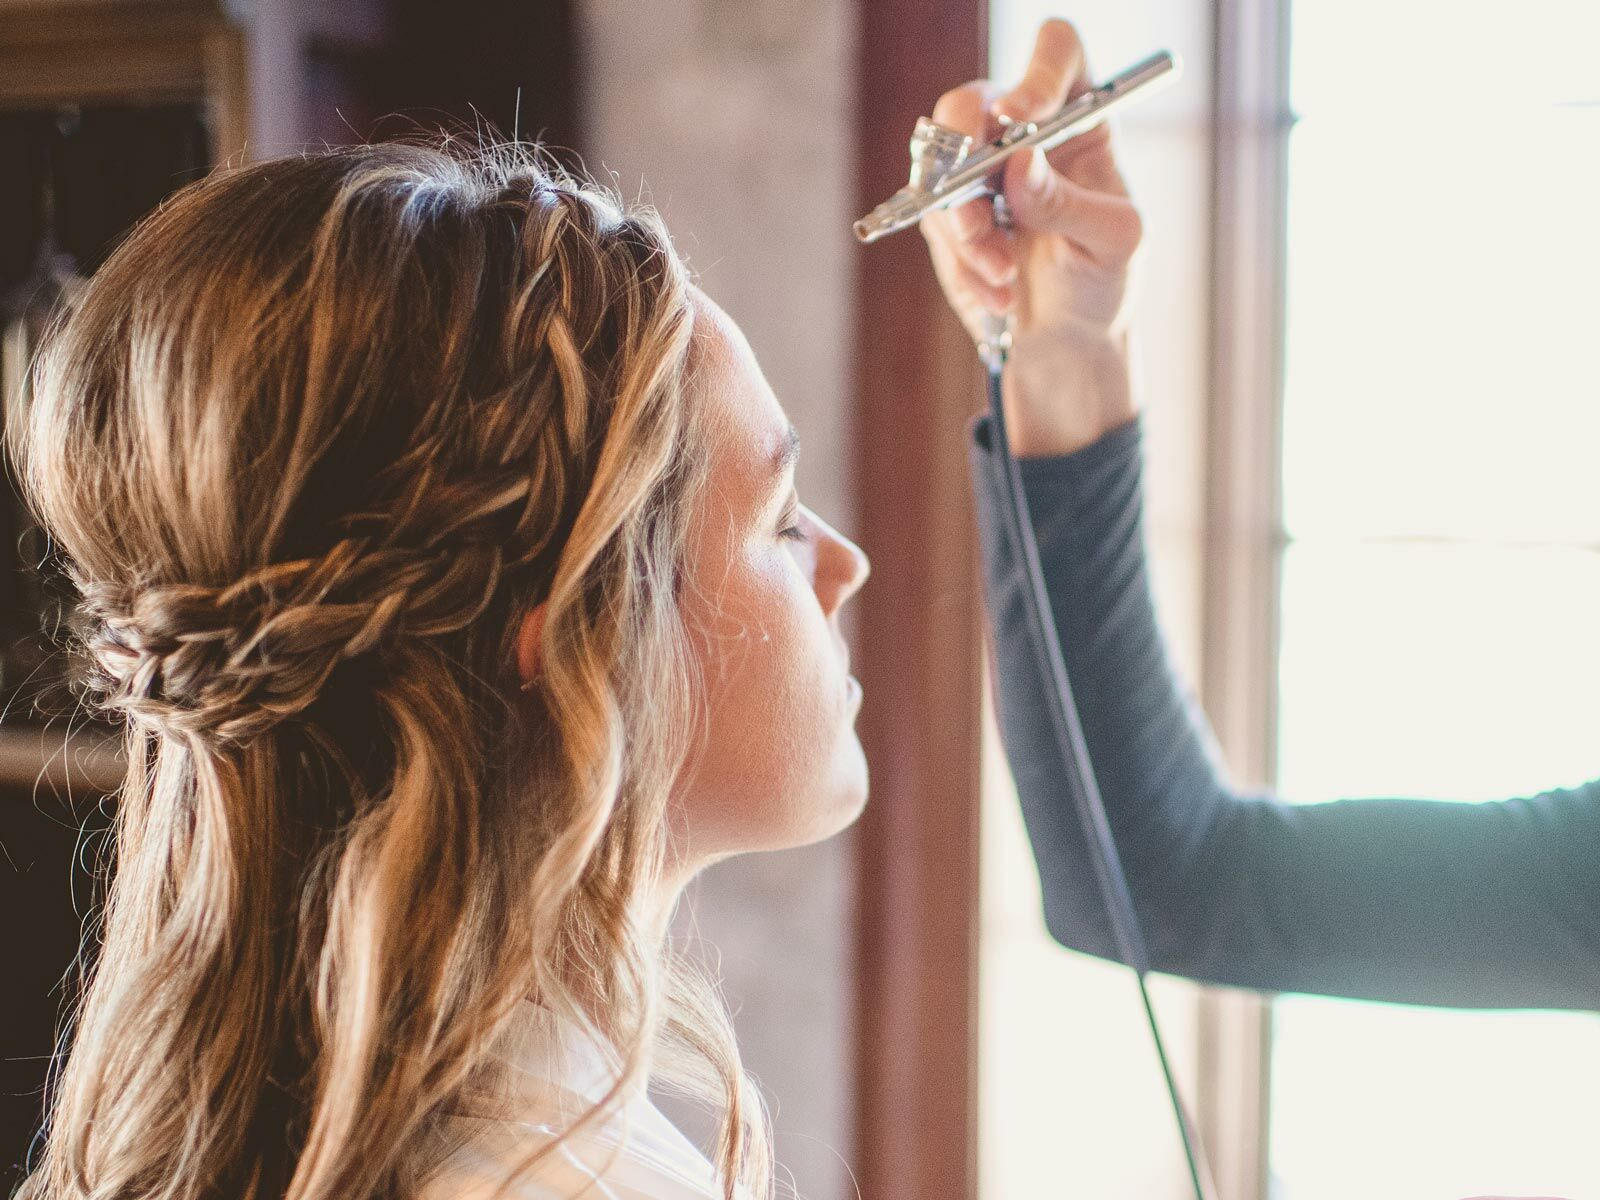 Airbrush Makeup For Your Wedding The